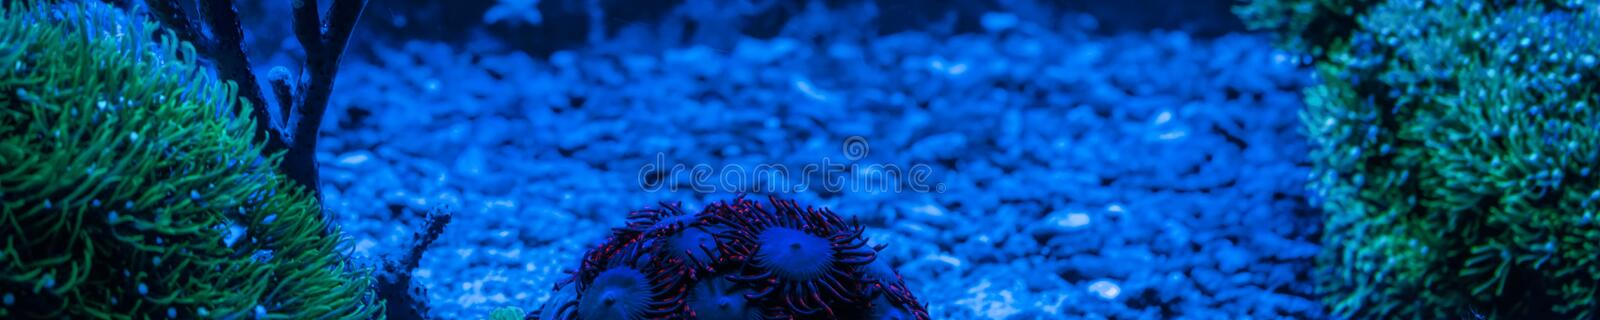 Reef tank, marine aquarium full of fishes and plants. Horizontal photo banner for website header. Tank filled with water for keeping live underwater animals stock photo